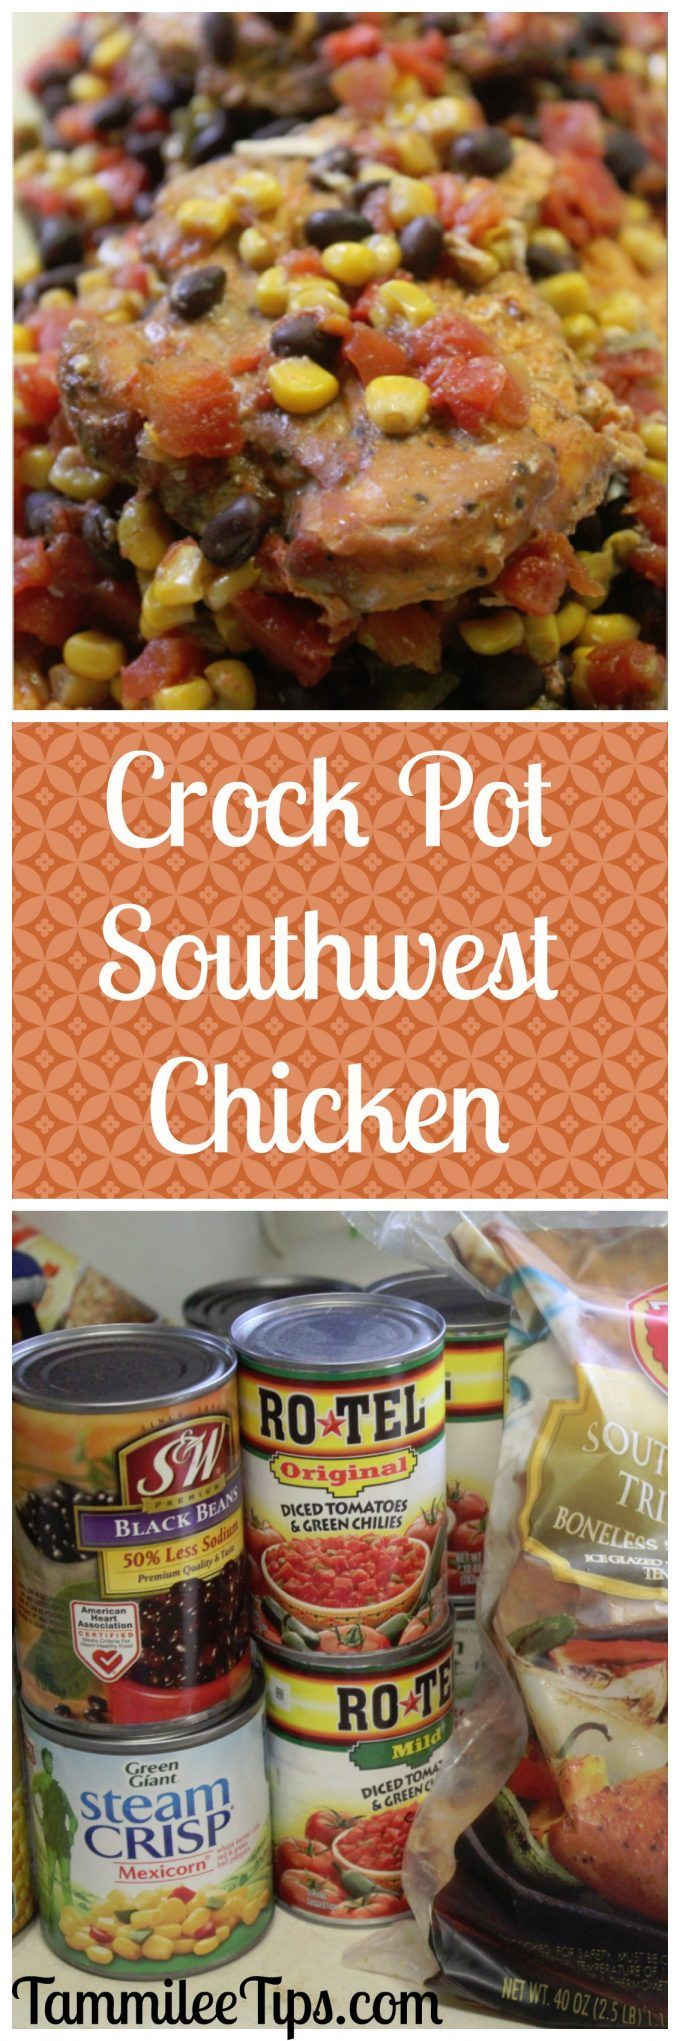 Crock Pot Southwest Chicken Recipe! This slow cooker chicken recipe can be as spicy as you would like it! So easy to make it is the perfect dinner recipe.  via @tammileetips